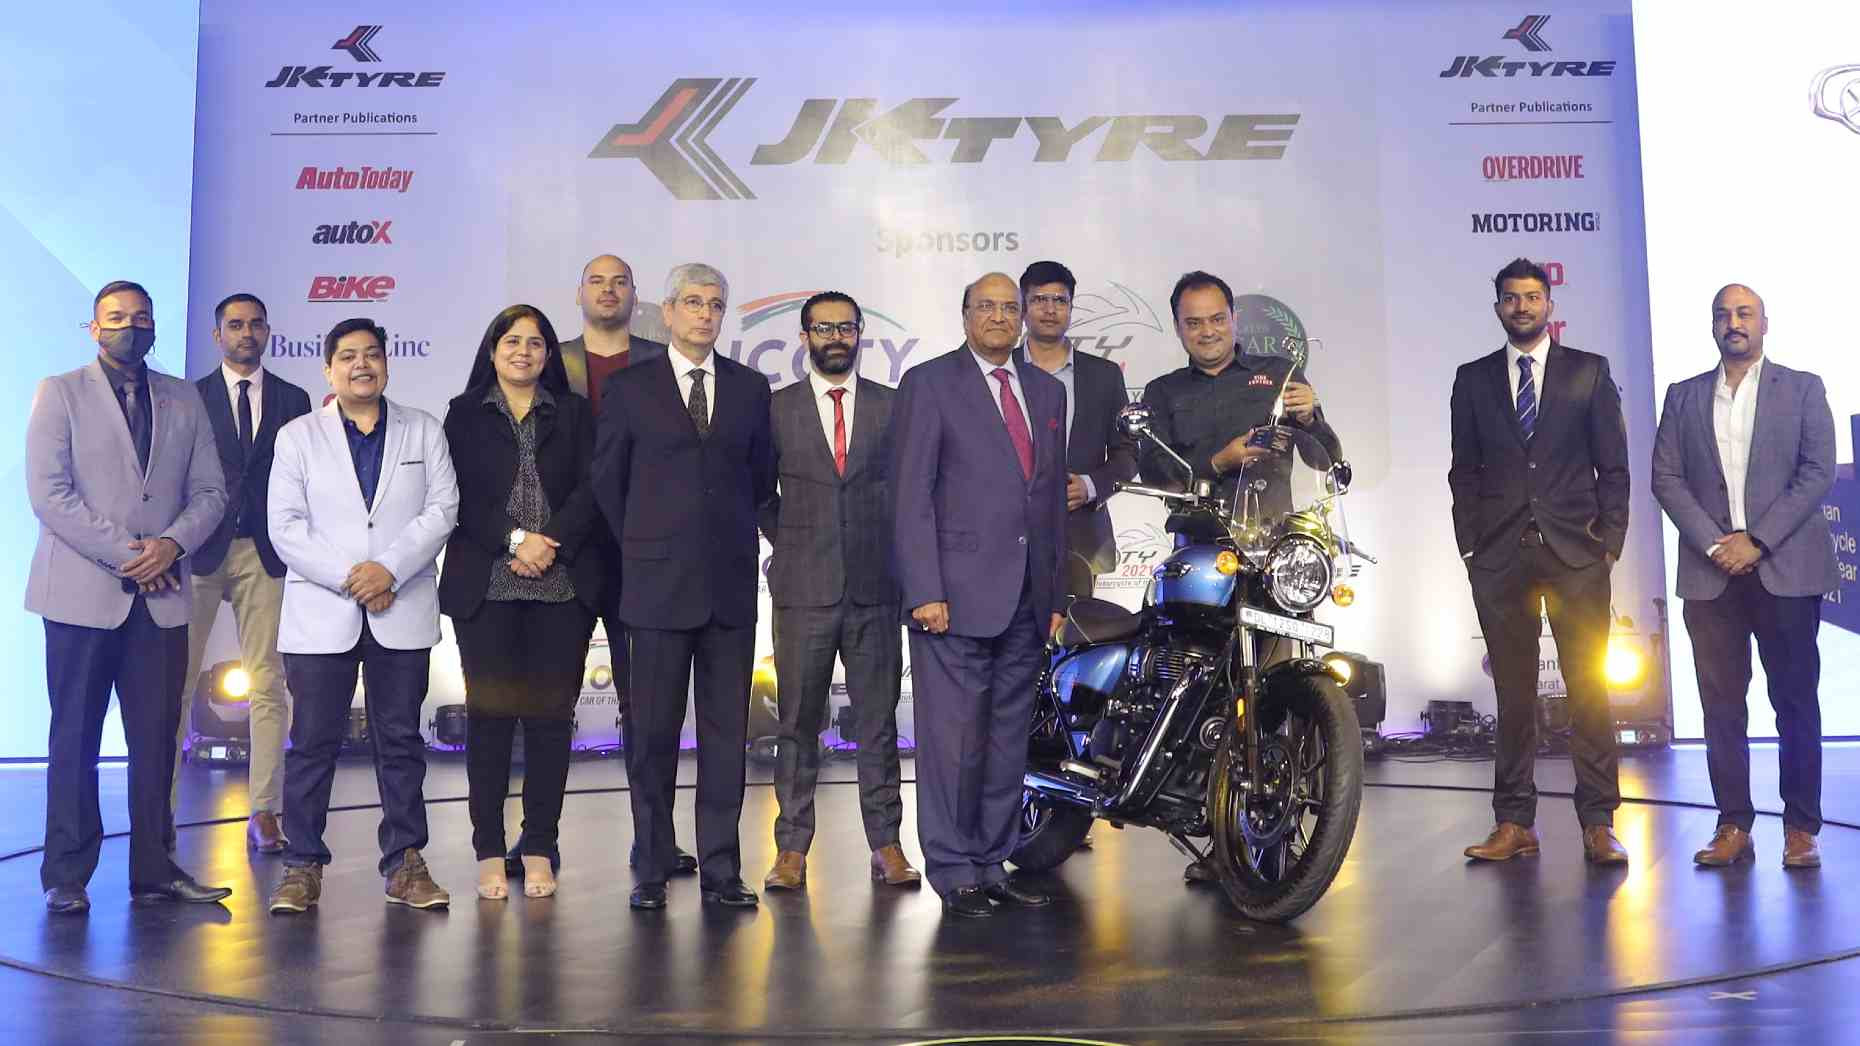 The Royal Enfield Meteor 350 beat the KTM 390 Adventure and Hero Xtreme 160R to the crown. Image: JK Tyre